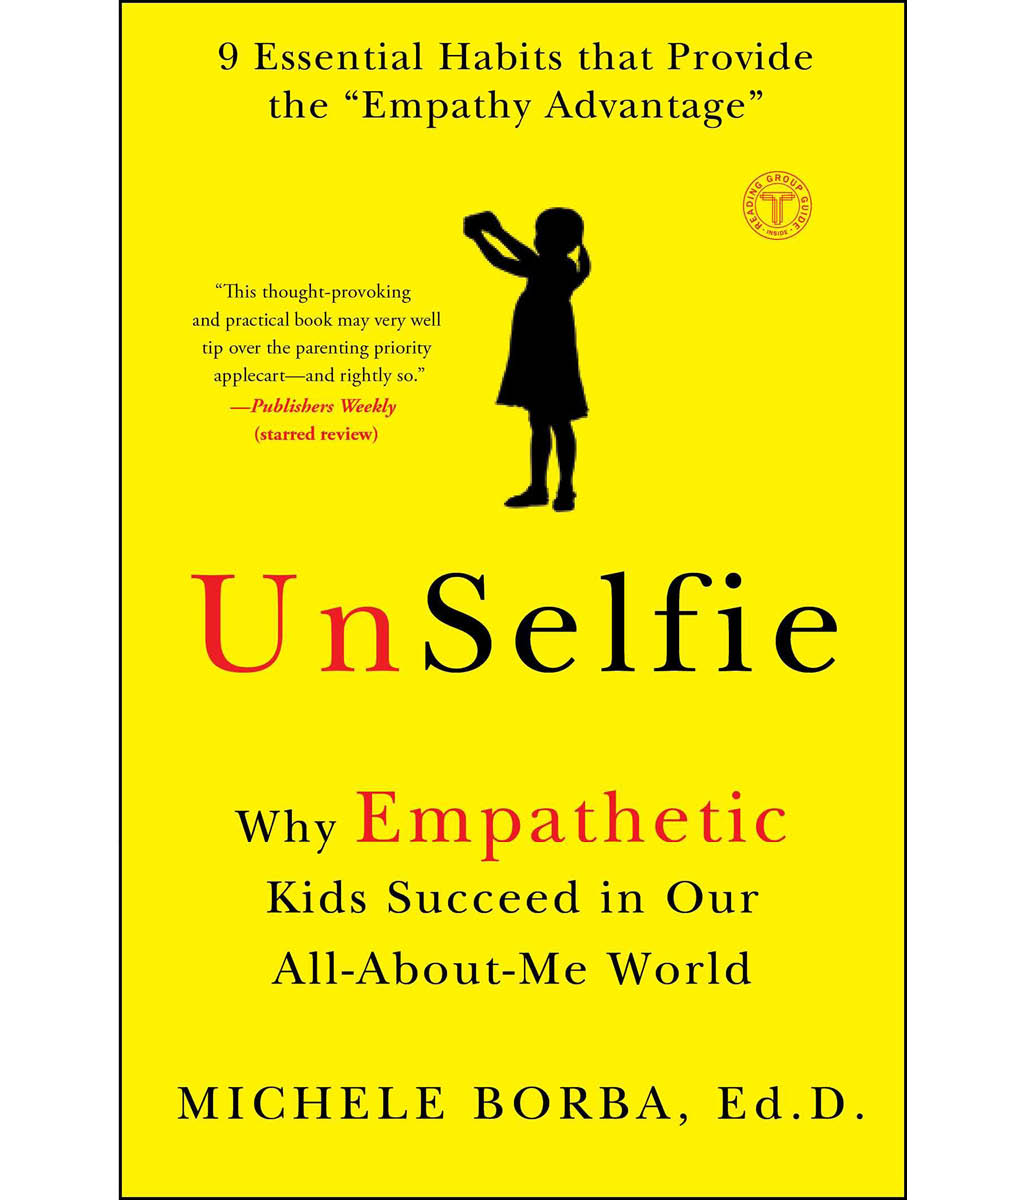 UnSelfie: Why Empathetic Kids Succeed in Our All-About-Me World by Borba Dr., Michele